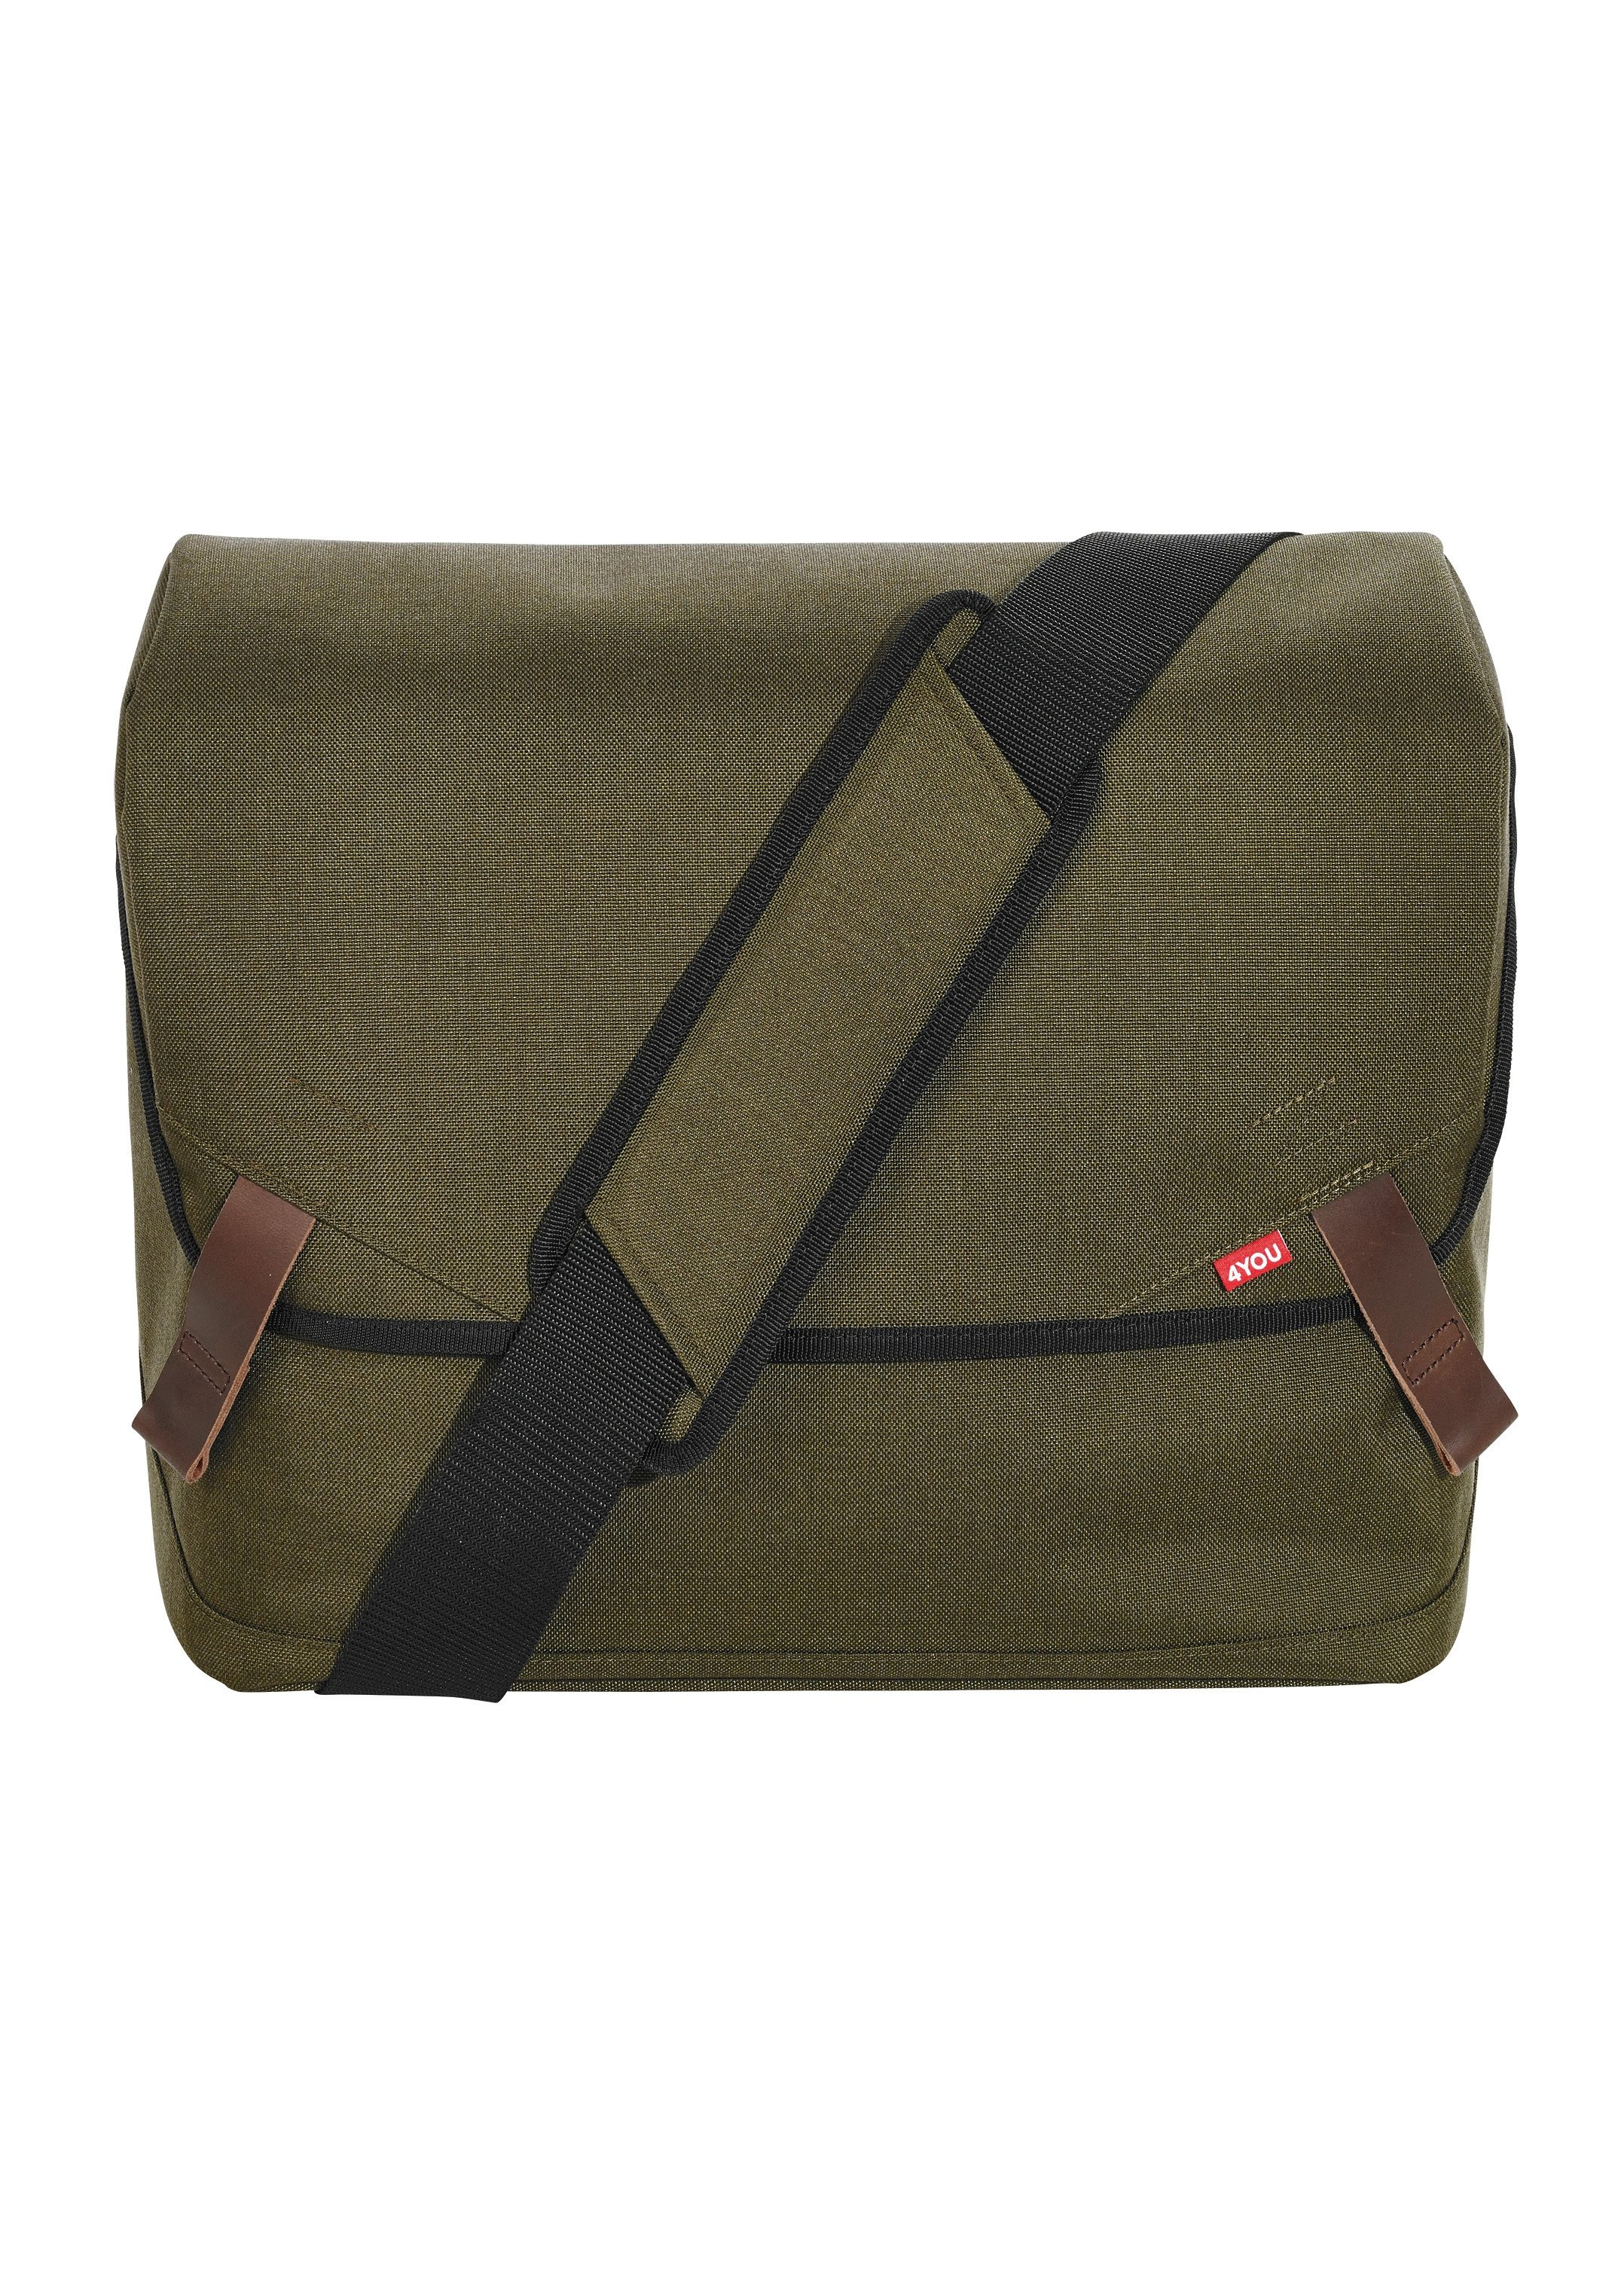 4YOU Umhängetasche mit Laptopfach, Olive, »Messengerbag«